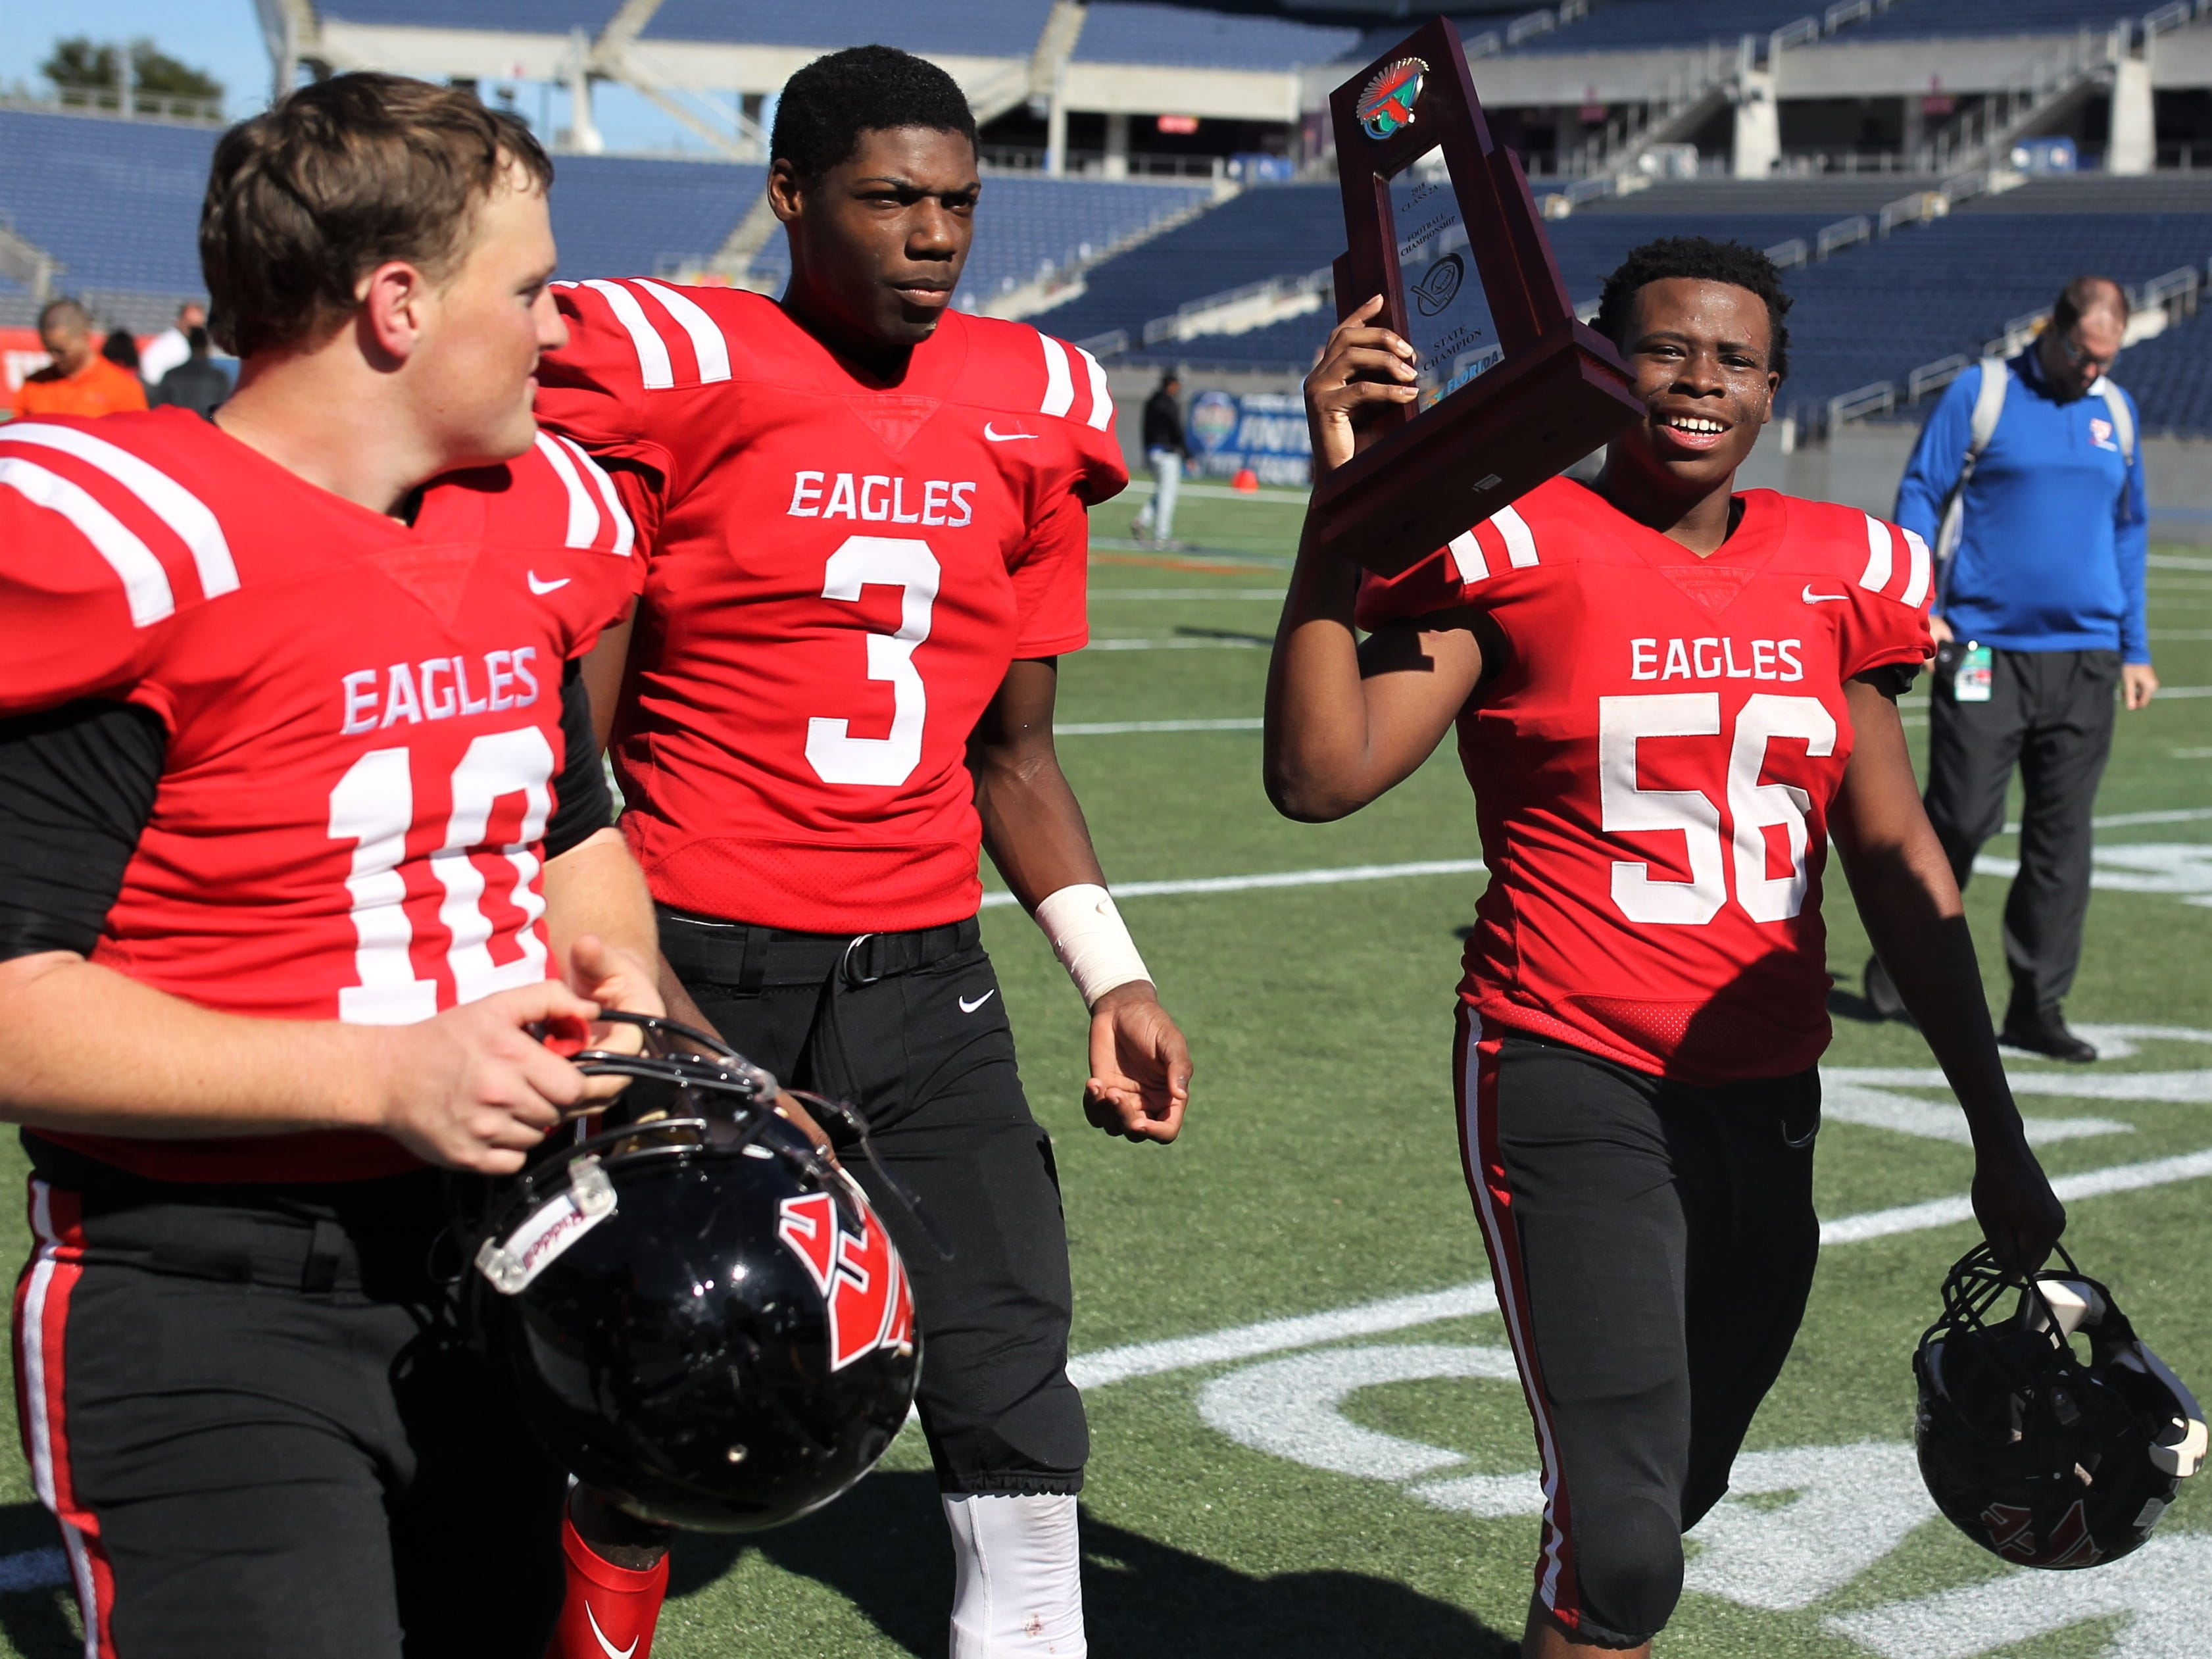 Elisha Partner (56), Tredarious Langston (3), and Chandler Gwartney (10) celebrate after NFC beat Champagnat Catholic 28-20 to win a Class 2A state championship on Friday, Dec. 7, 2018, at Orlando's Camping World Stadium.